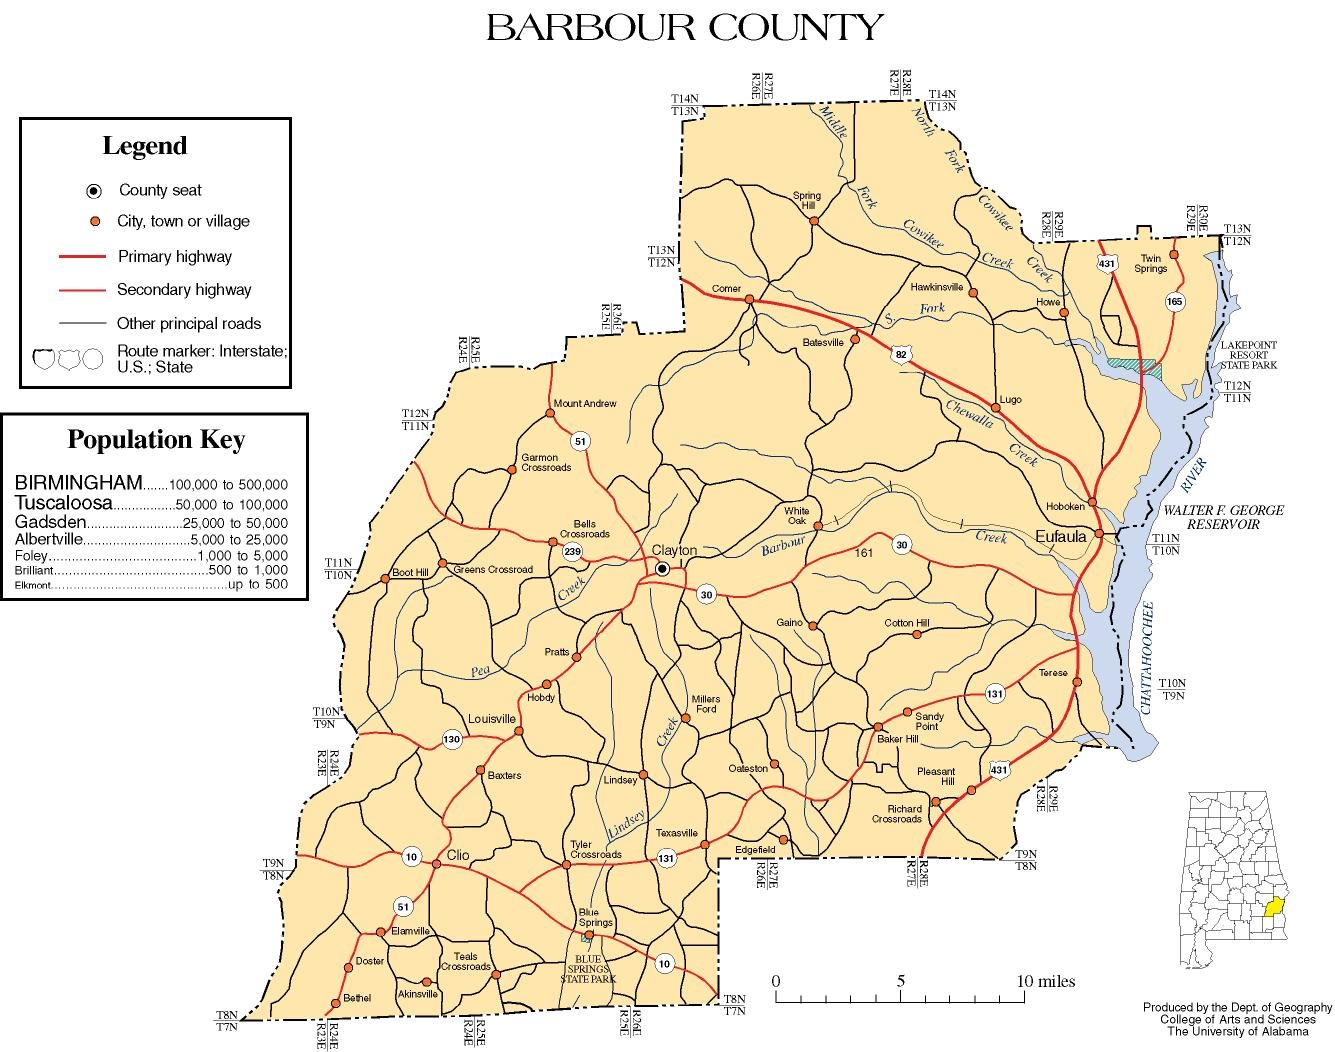 Barbour County, Alabama | The City, Town, and Community Wiki ... on map of ecuador cities towns and provinces, map of alabama coast, map of alabama showing cities, map showing alabama counties, map of england counties and cities, map of connecticut towns, map of cape cod towns, map of colorado counties and cities, map of mexico cities and towns, map of world with latitude and longitude, map of europe with cities, map of massachusetts towns and cities, map of ms towns and cities, map of al, map of ct towns with names, map of china with cities, map of ghana with towns, map of canada with cities, map of maine towns, map of ireland counties and cities,